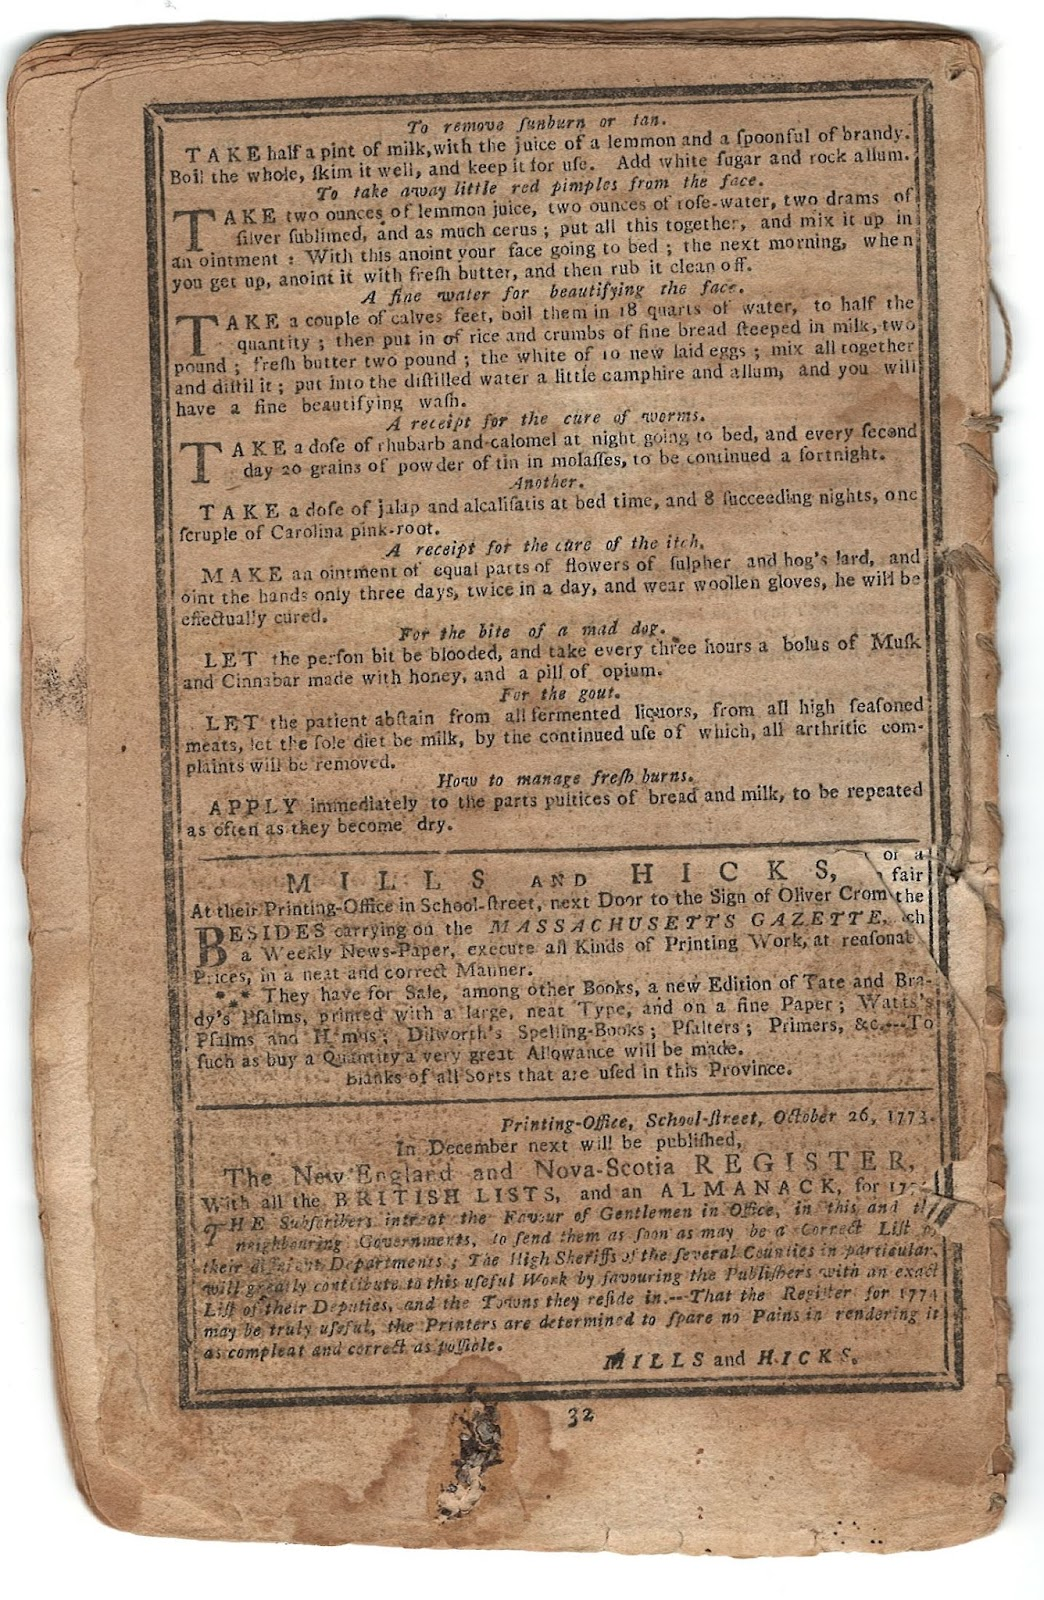 List of remedies on the back of the almanac.